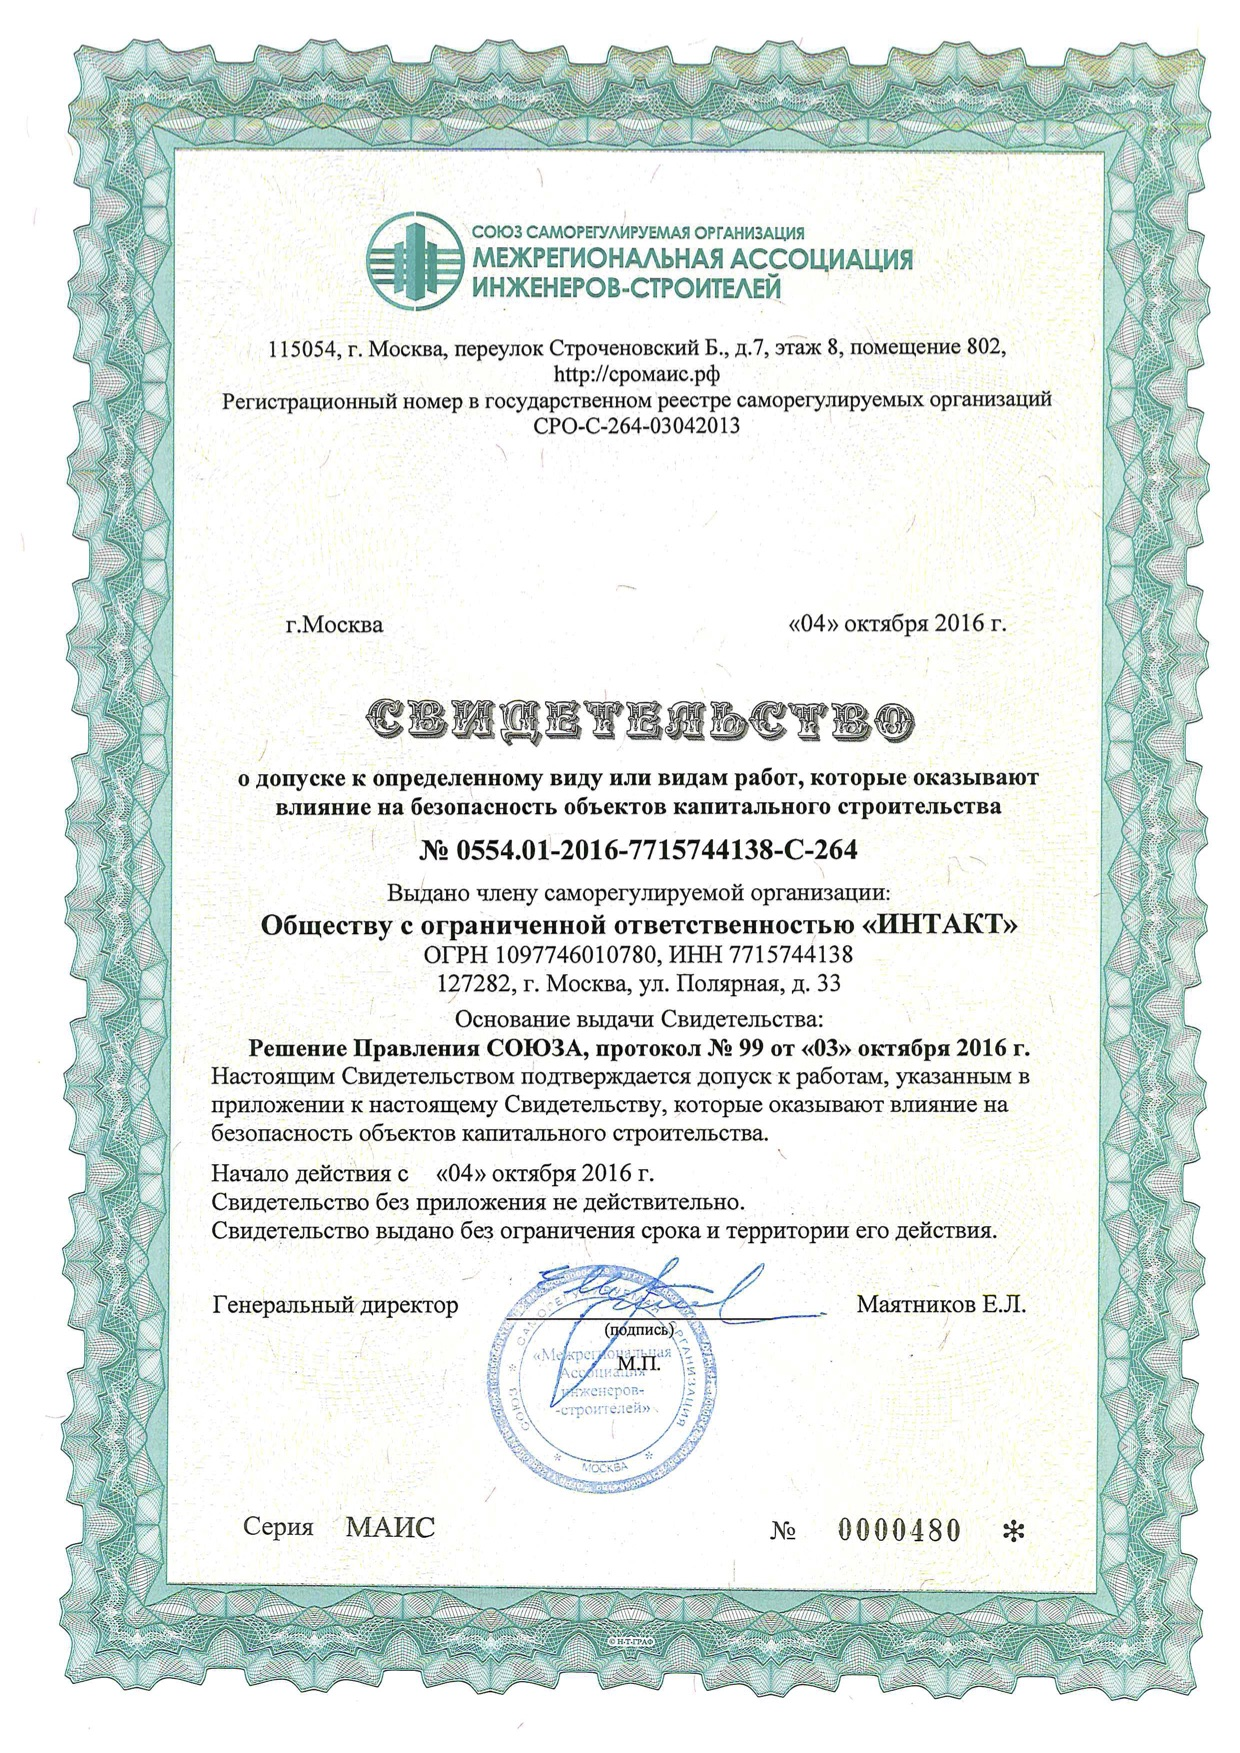 Self-Regulatory Organization (SRO) Certificate for performance of works